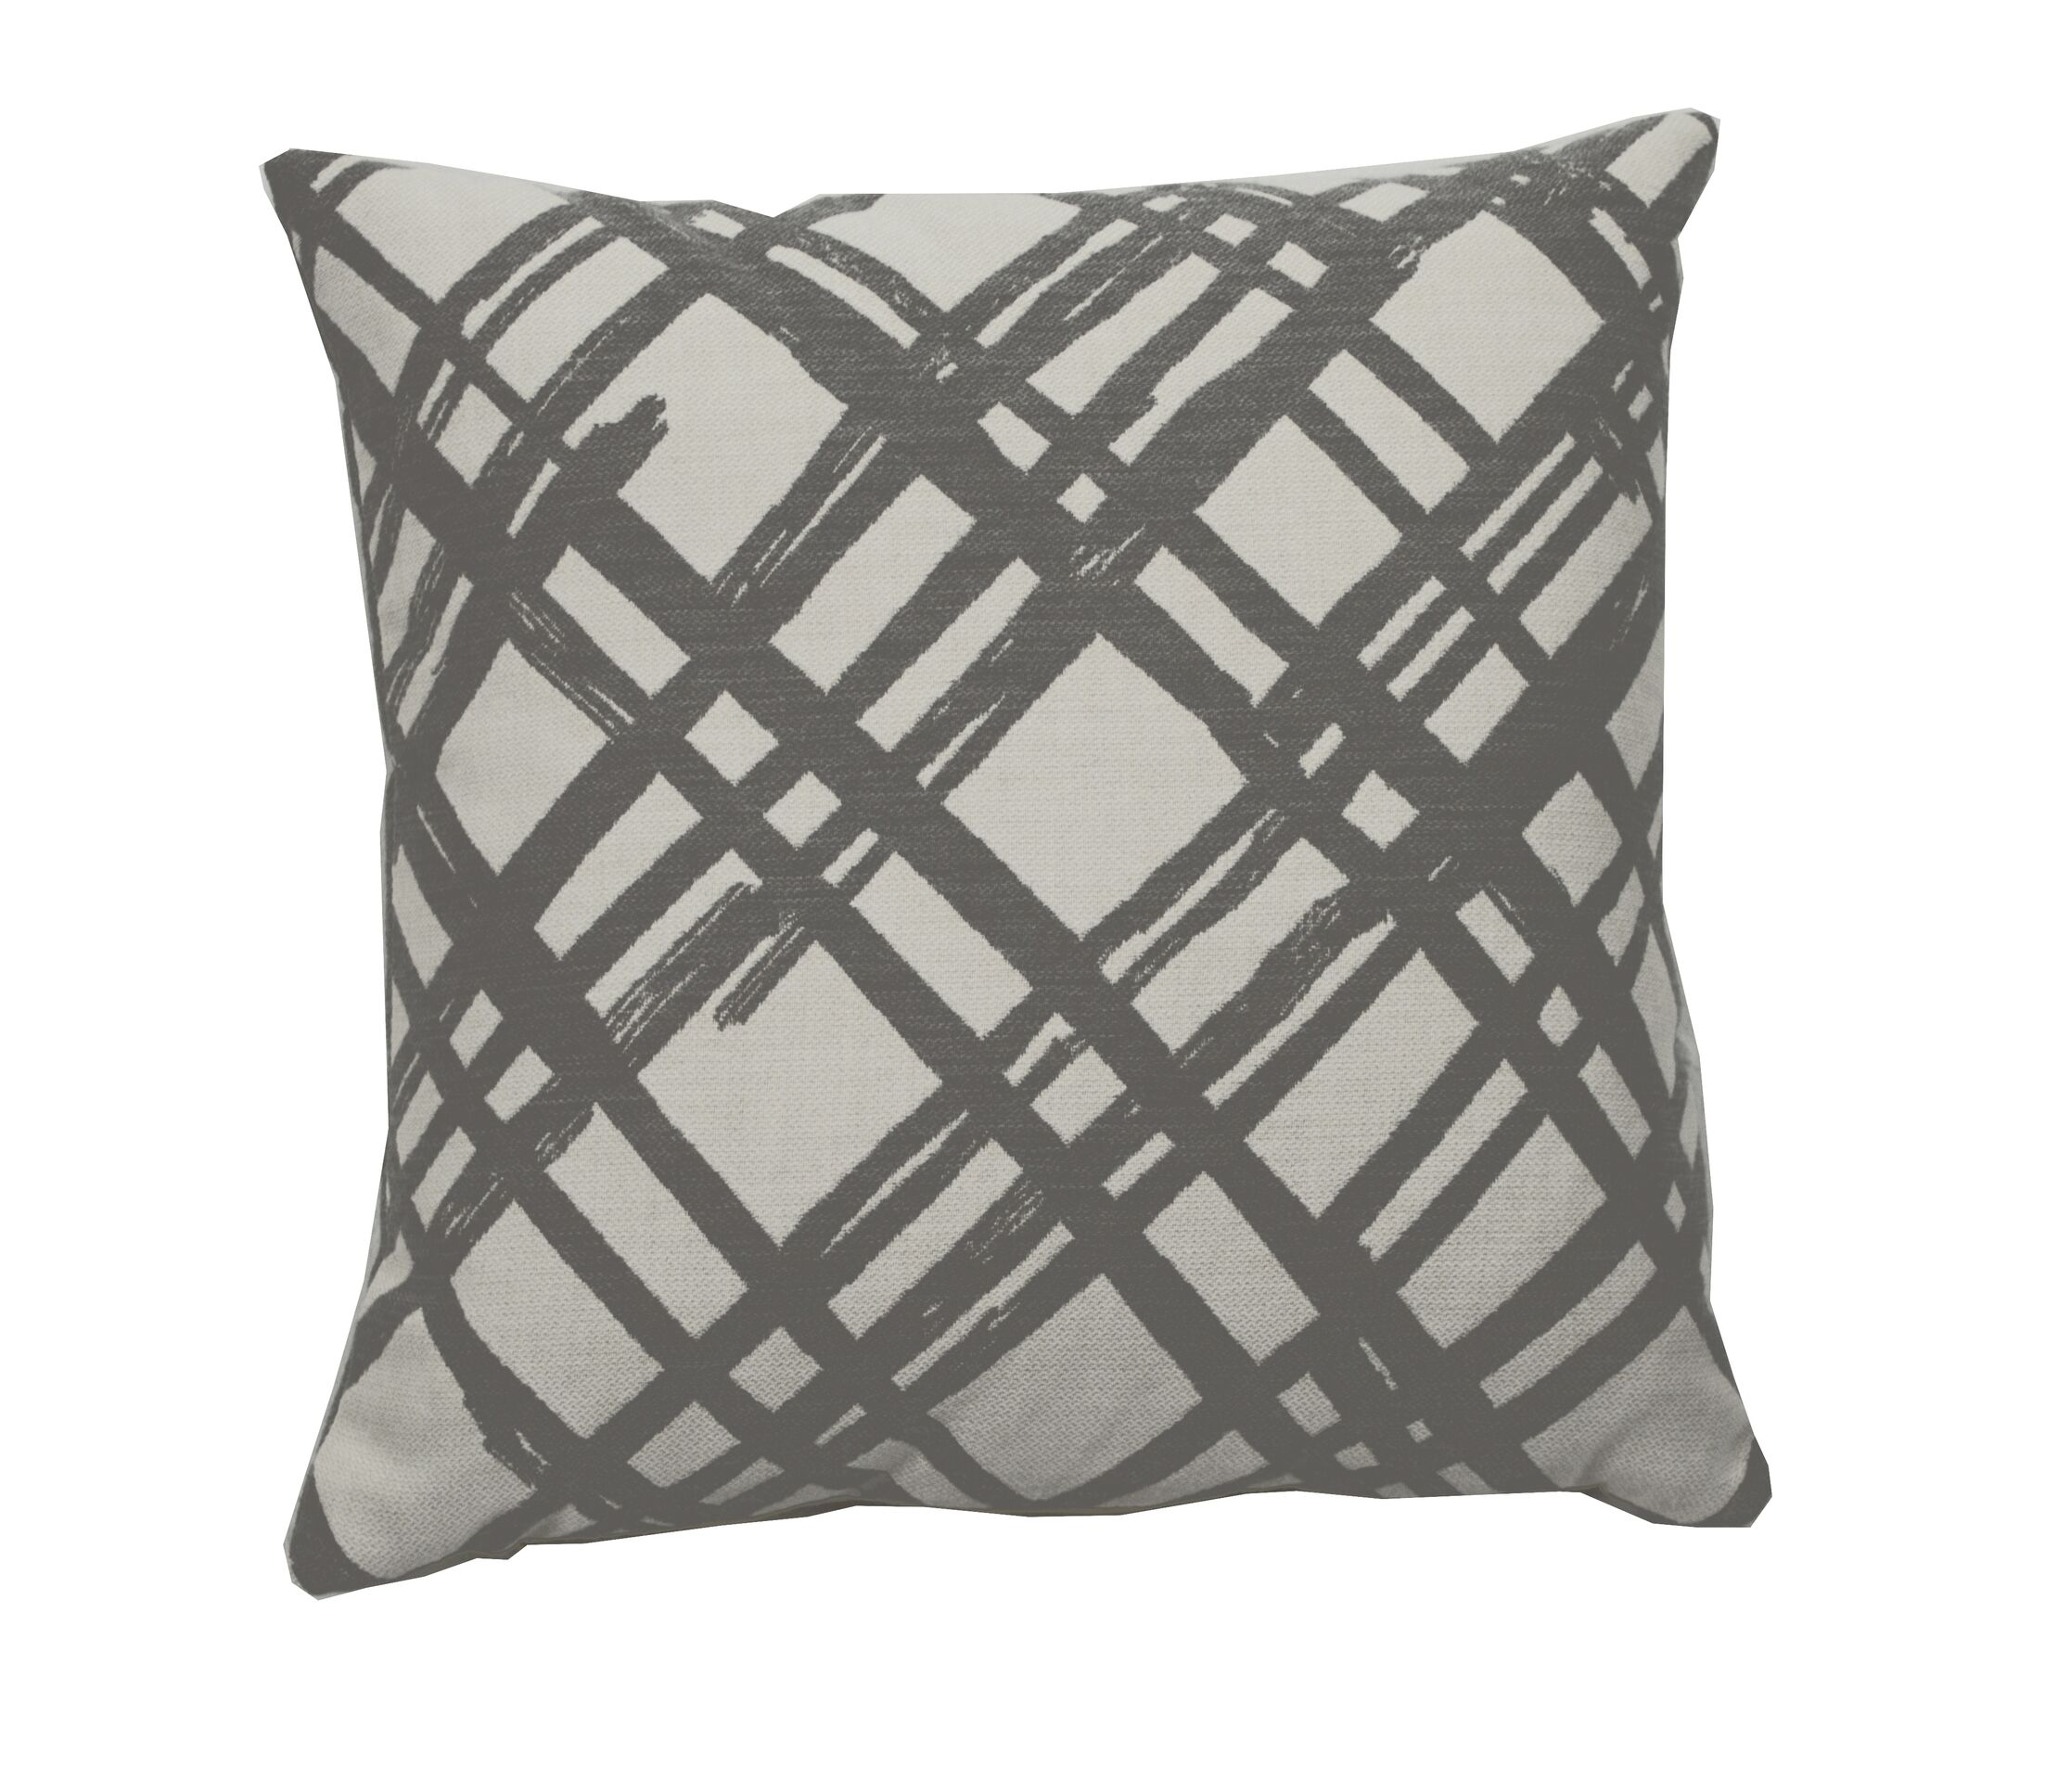 Slash Indoor/Outdoor Throw Pillow (Set of 2) Size: 20